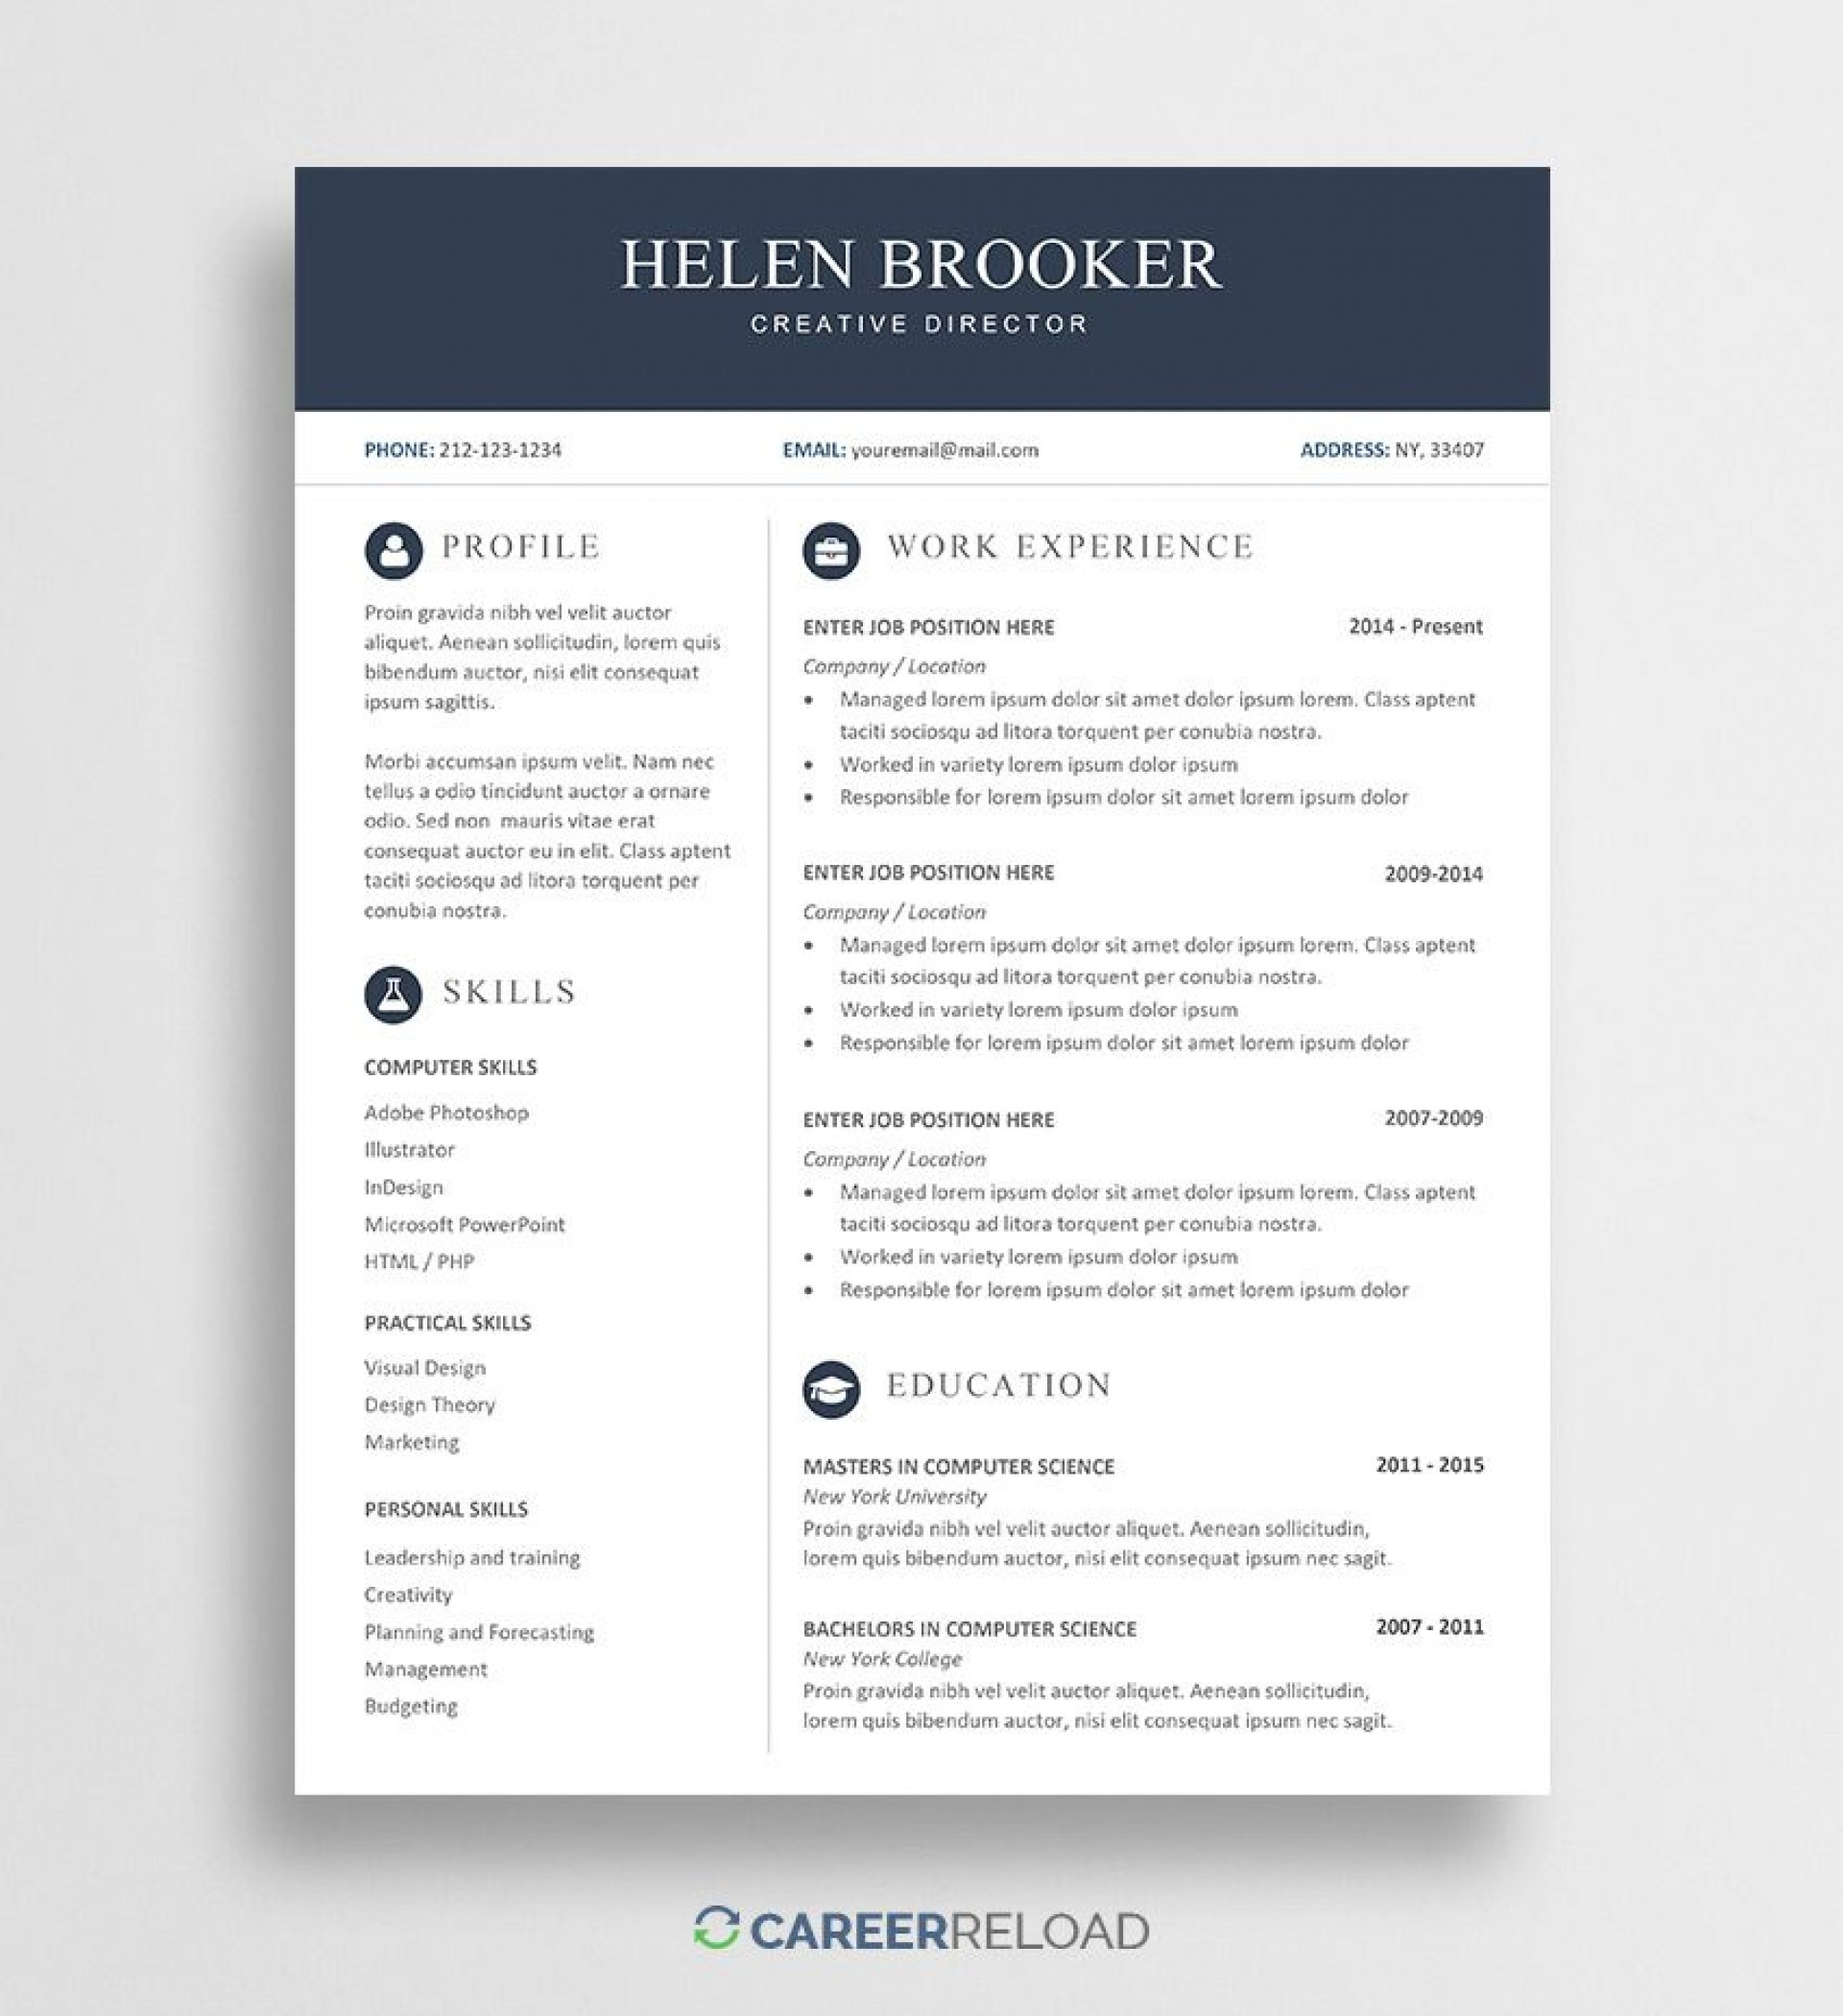 005 Fantastic Photoshop Cv Template Free Download Design  Creative Resume Psd Adobe1920